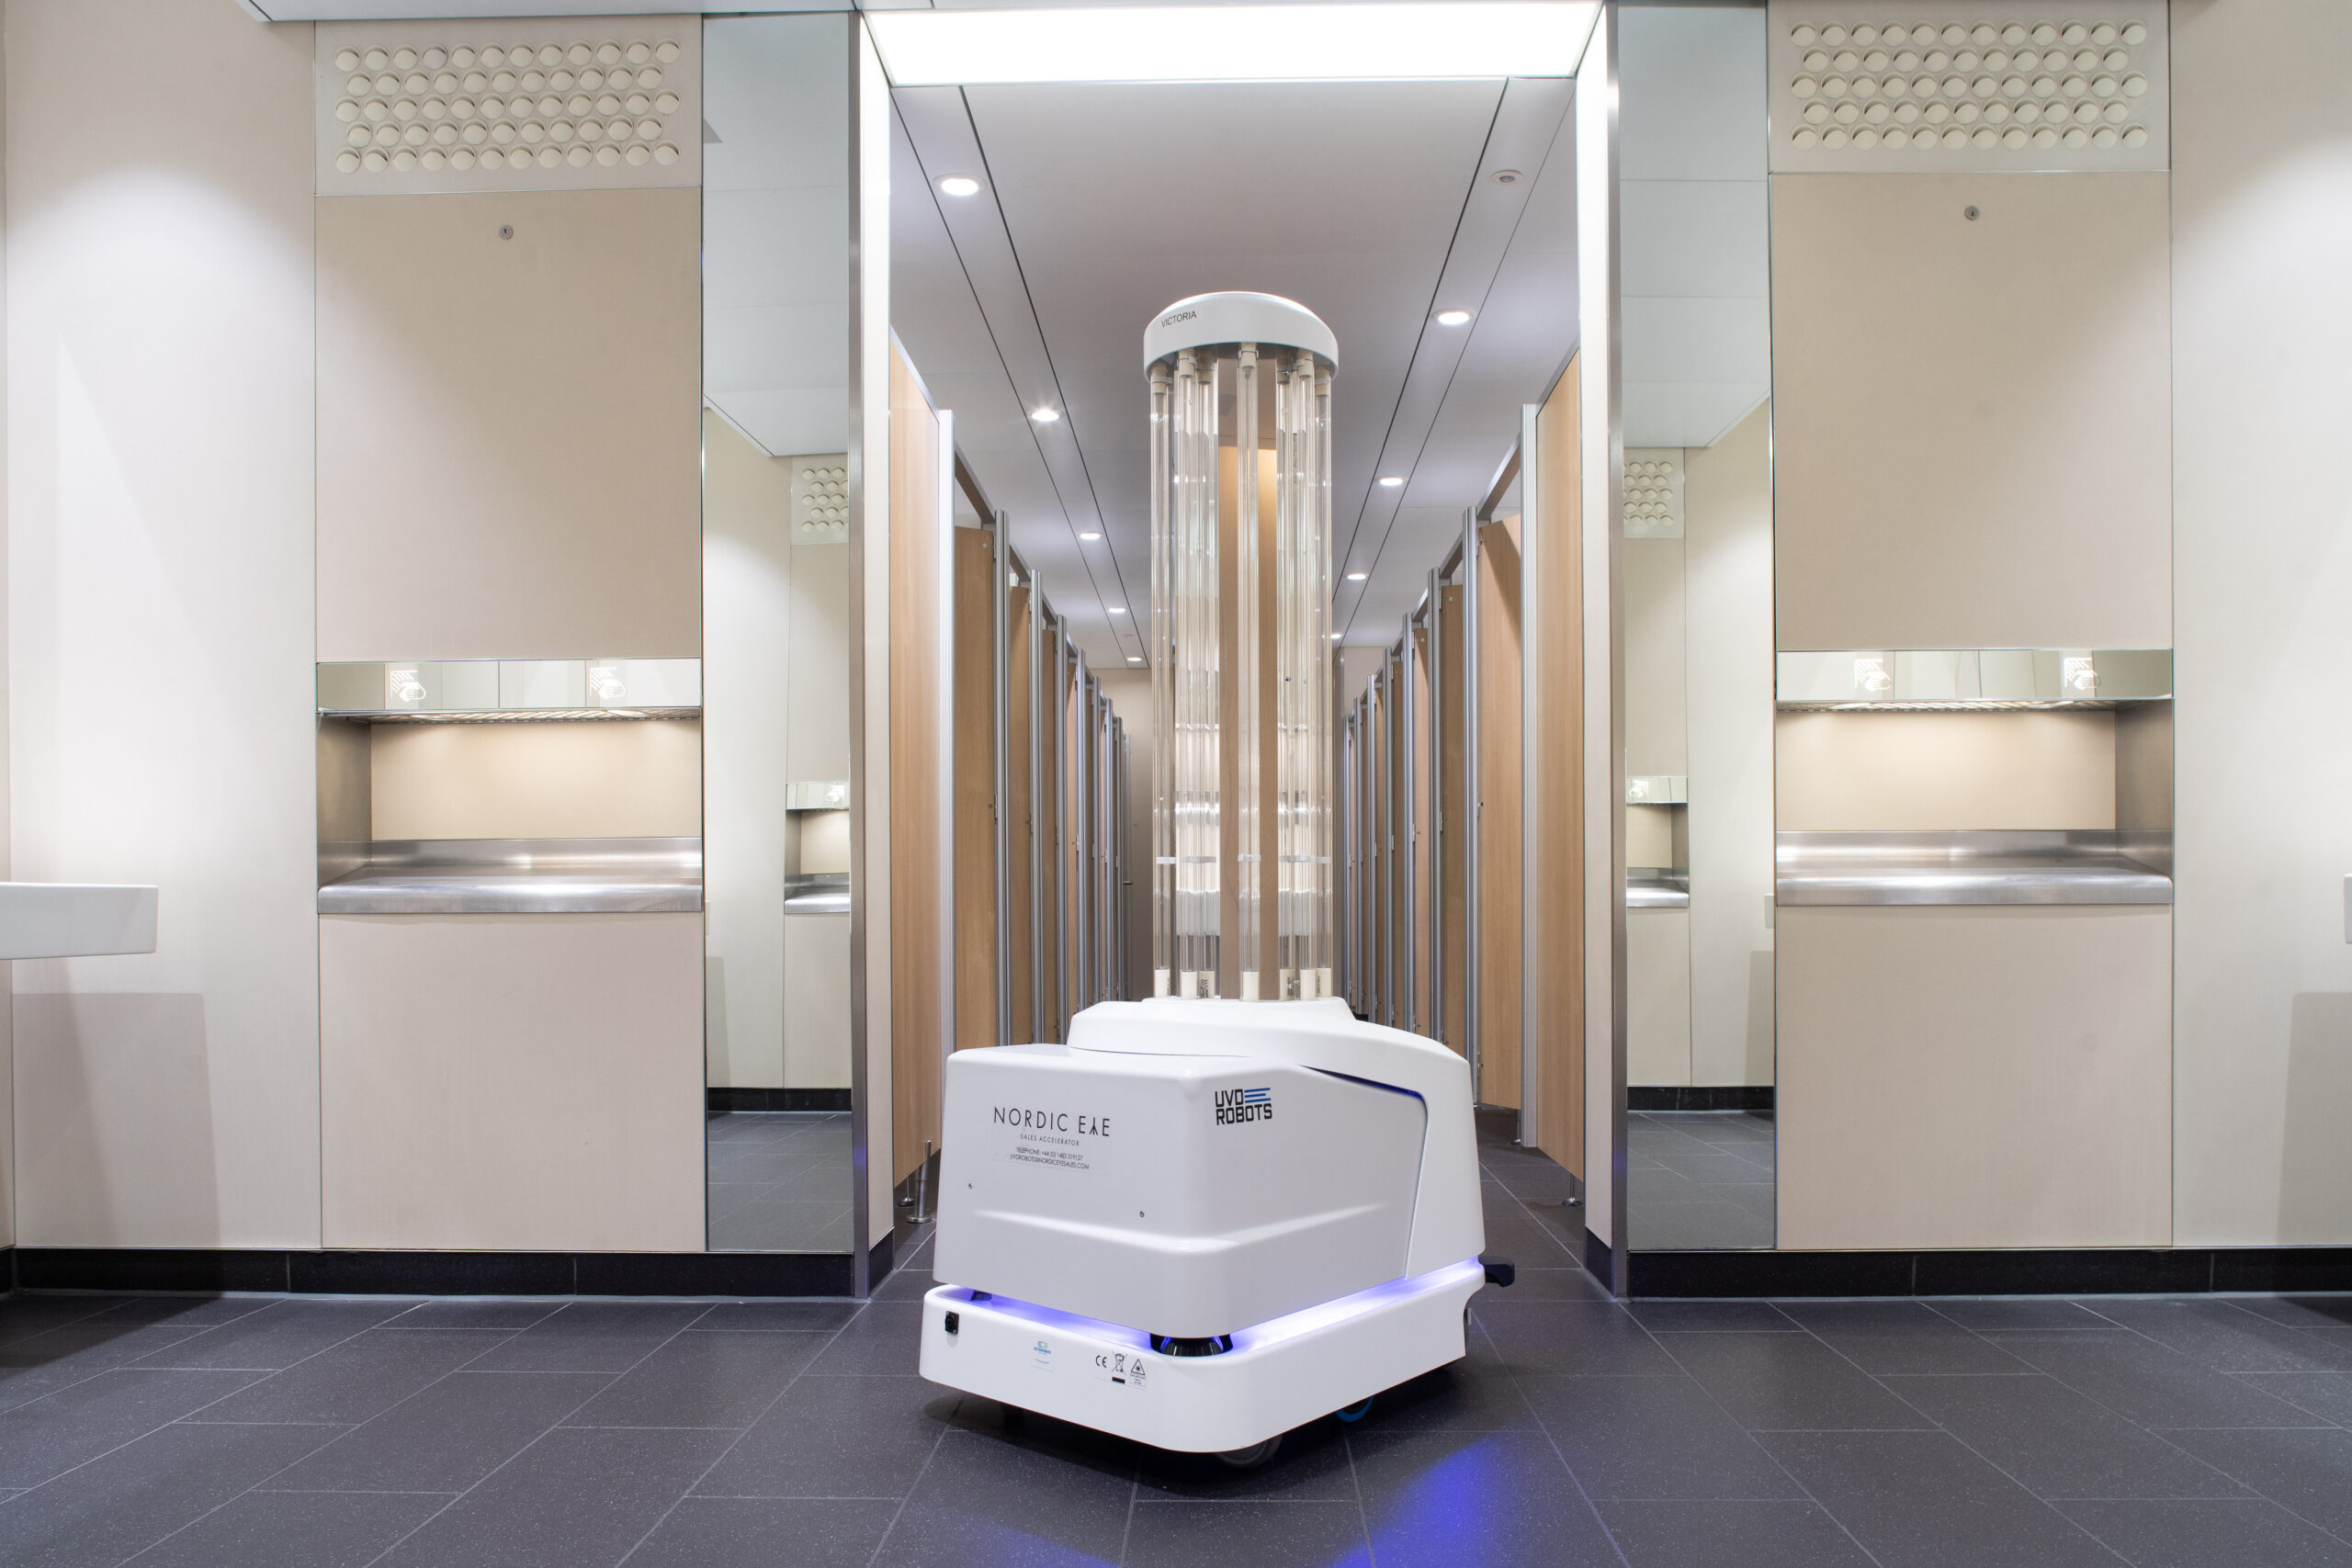 Heathrow airport germ-killing robots